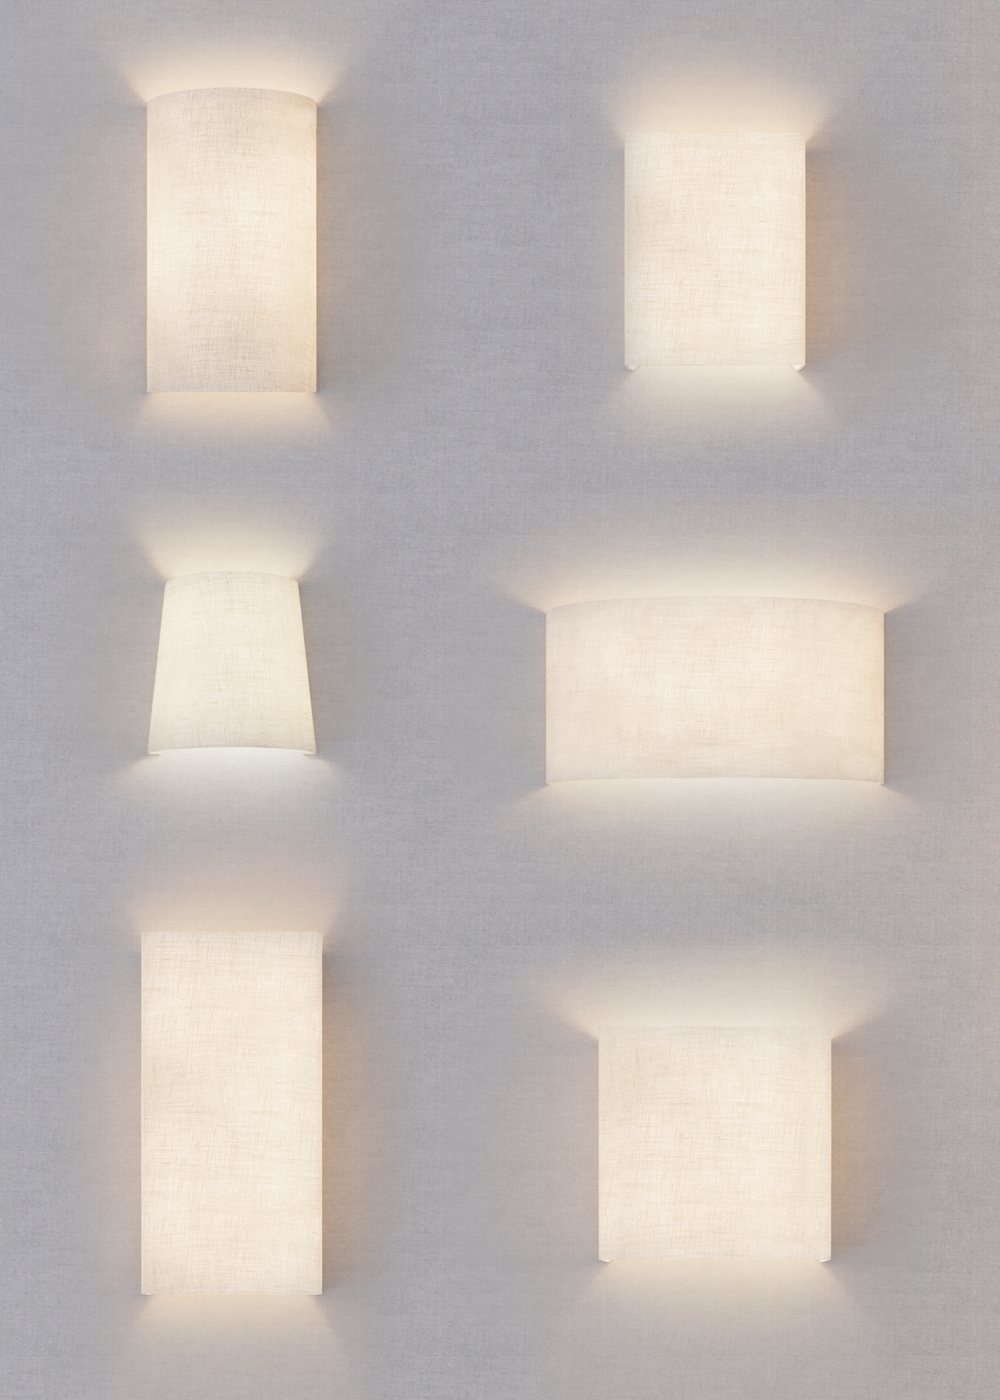 1Select Shade Shape - Choose from over 12 different wall sconce shapes